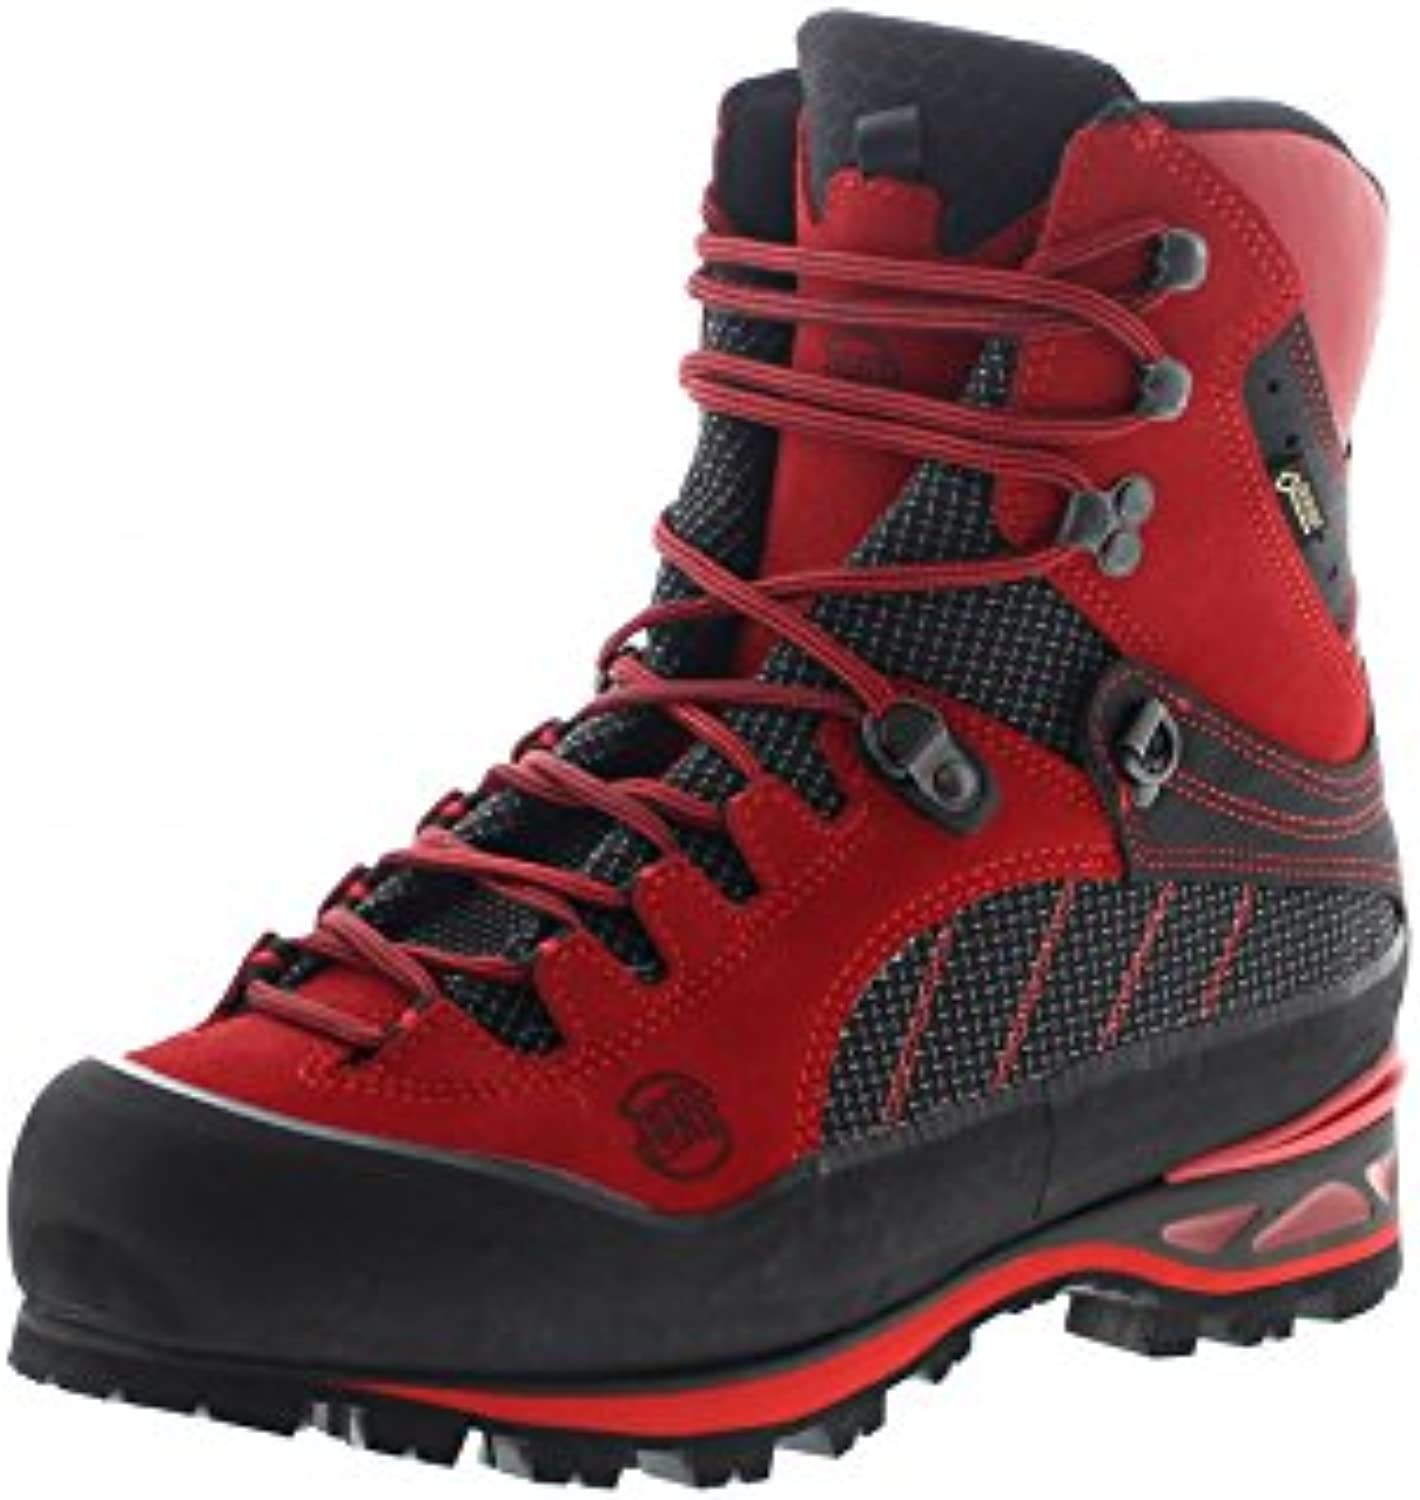 Hanwag Friction II GTX – Bright red